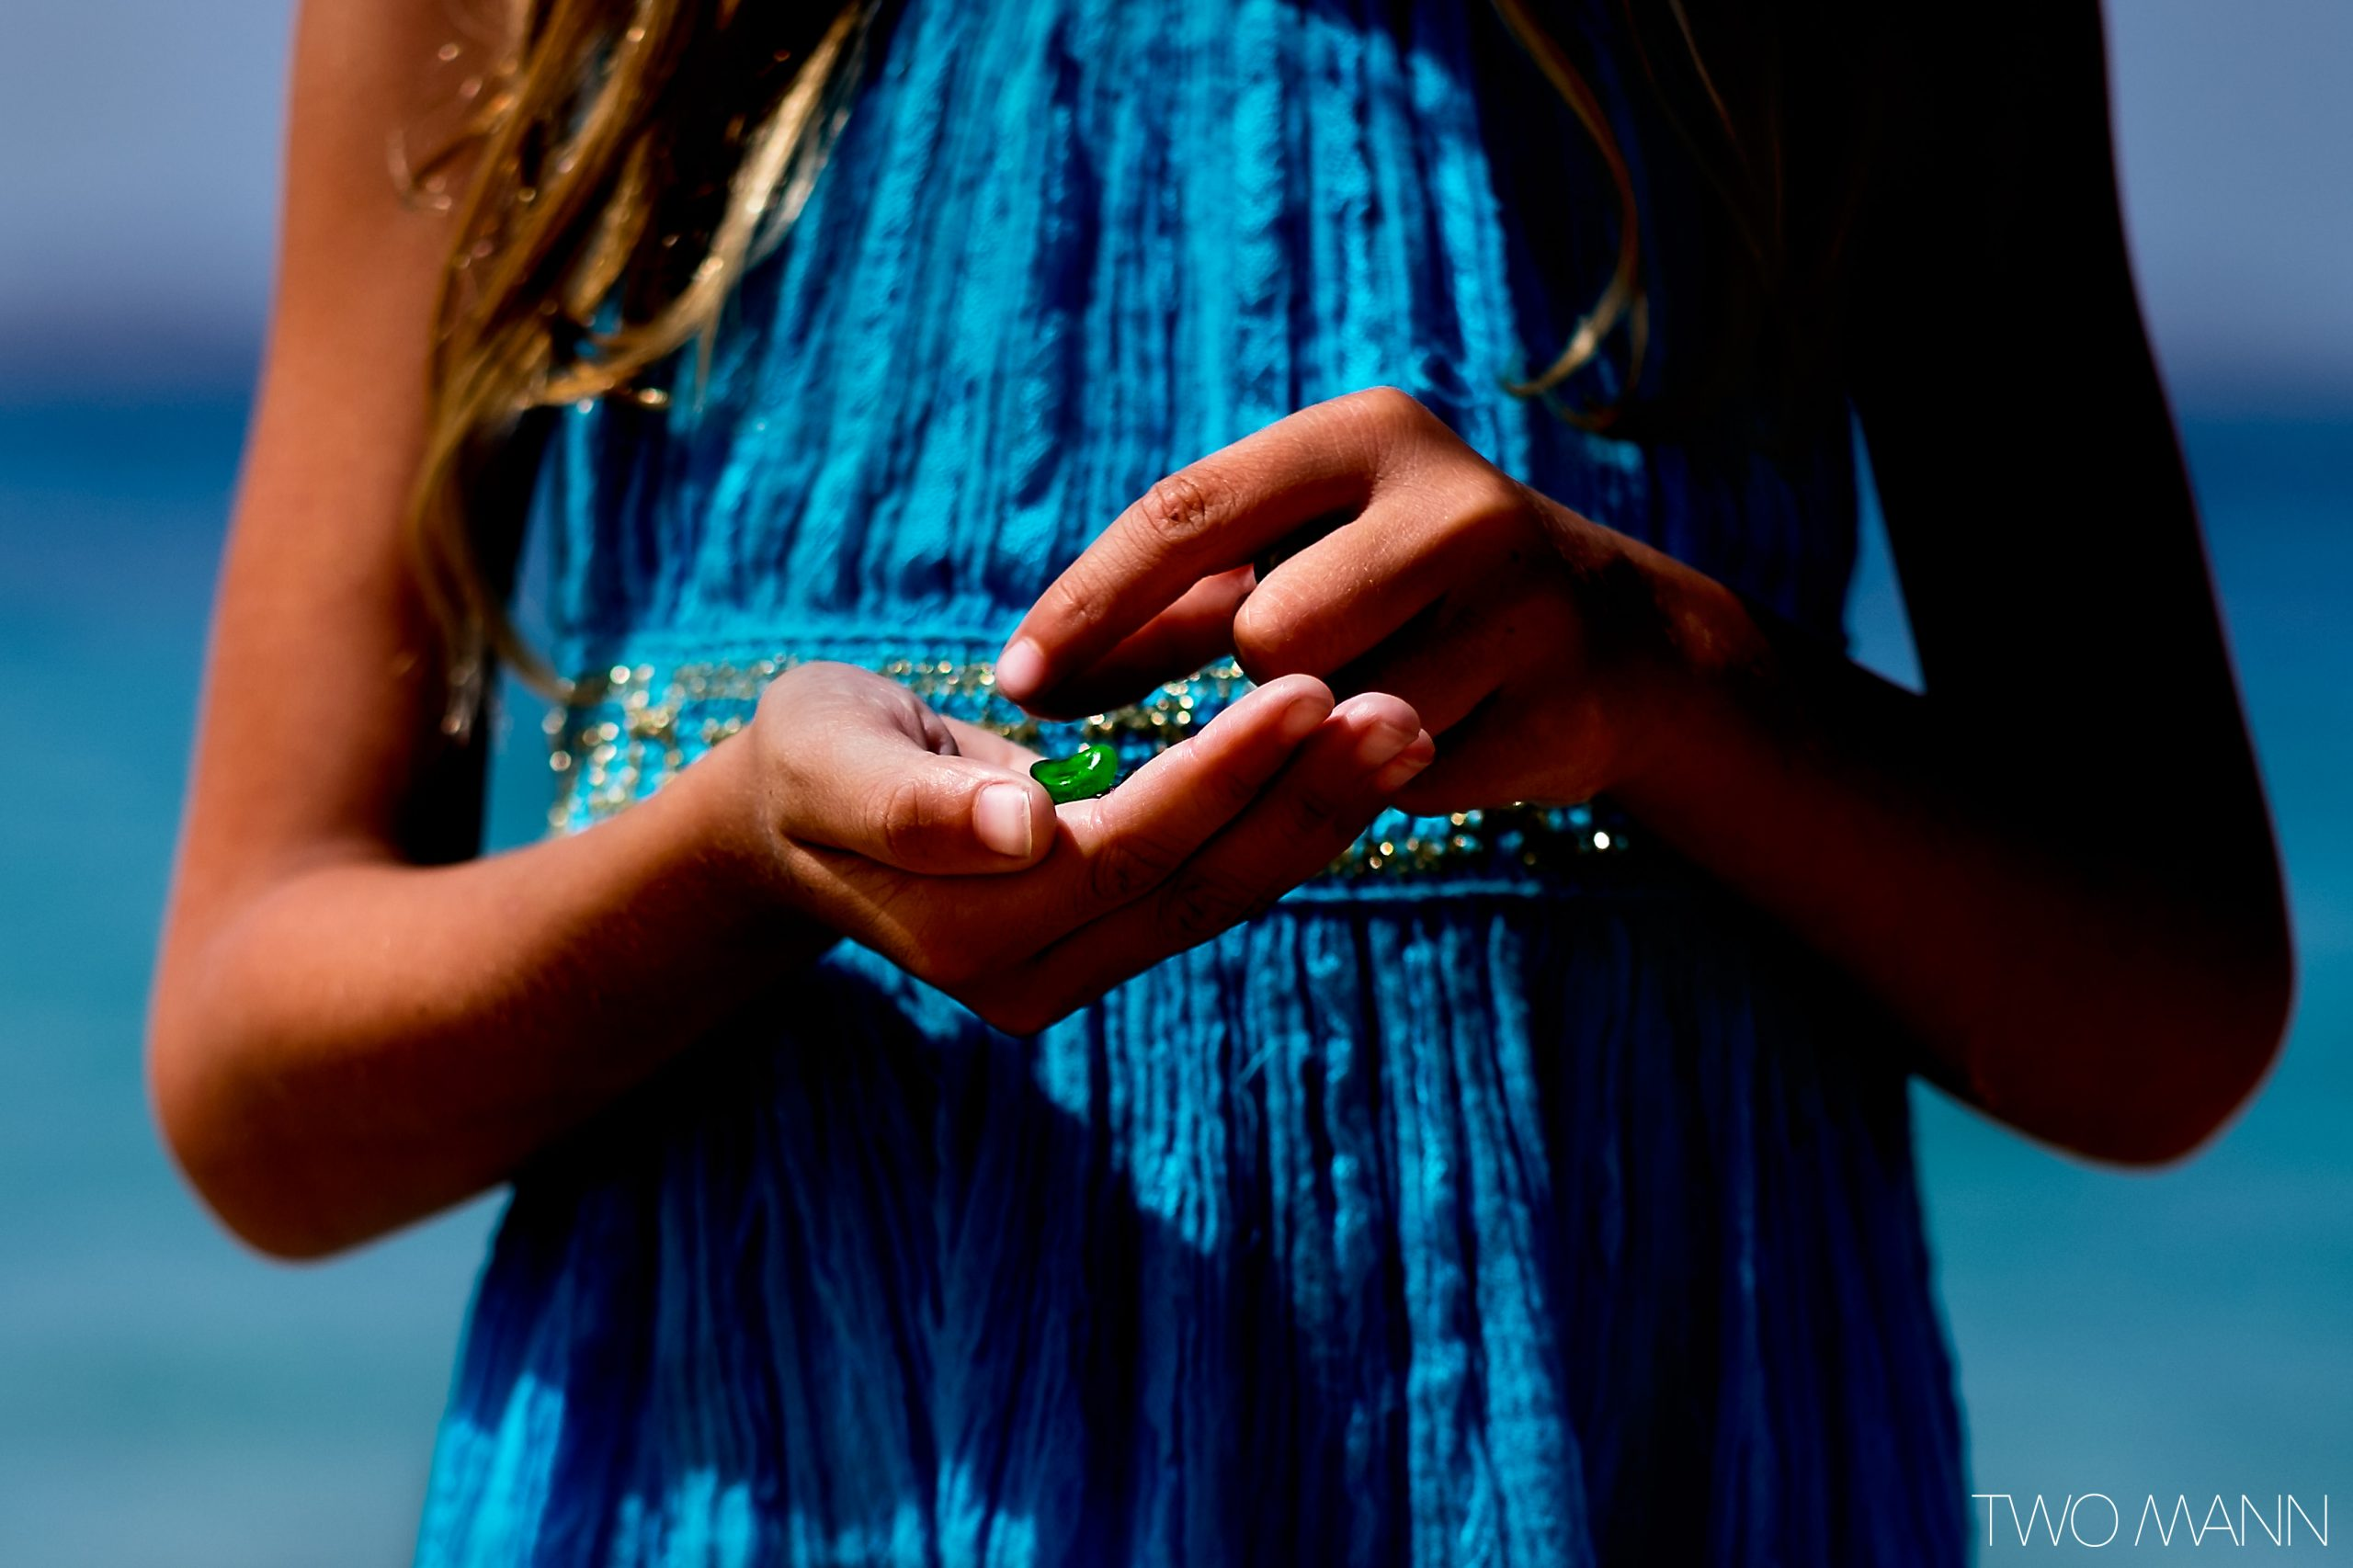 Young girl in blue dress playing with green bug in her hand